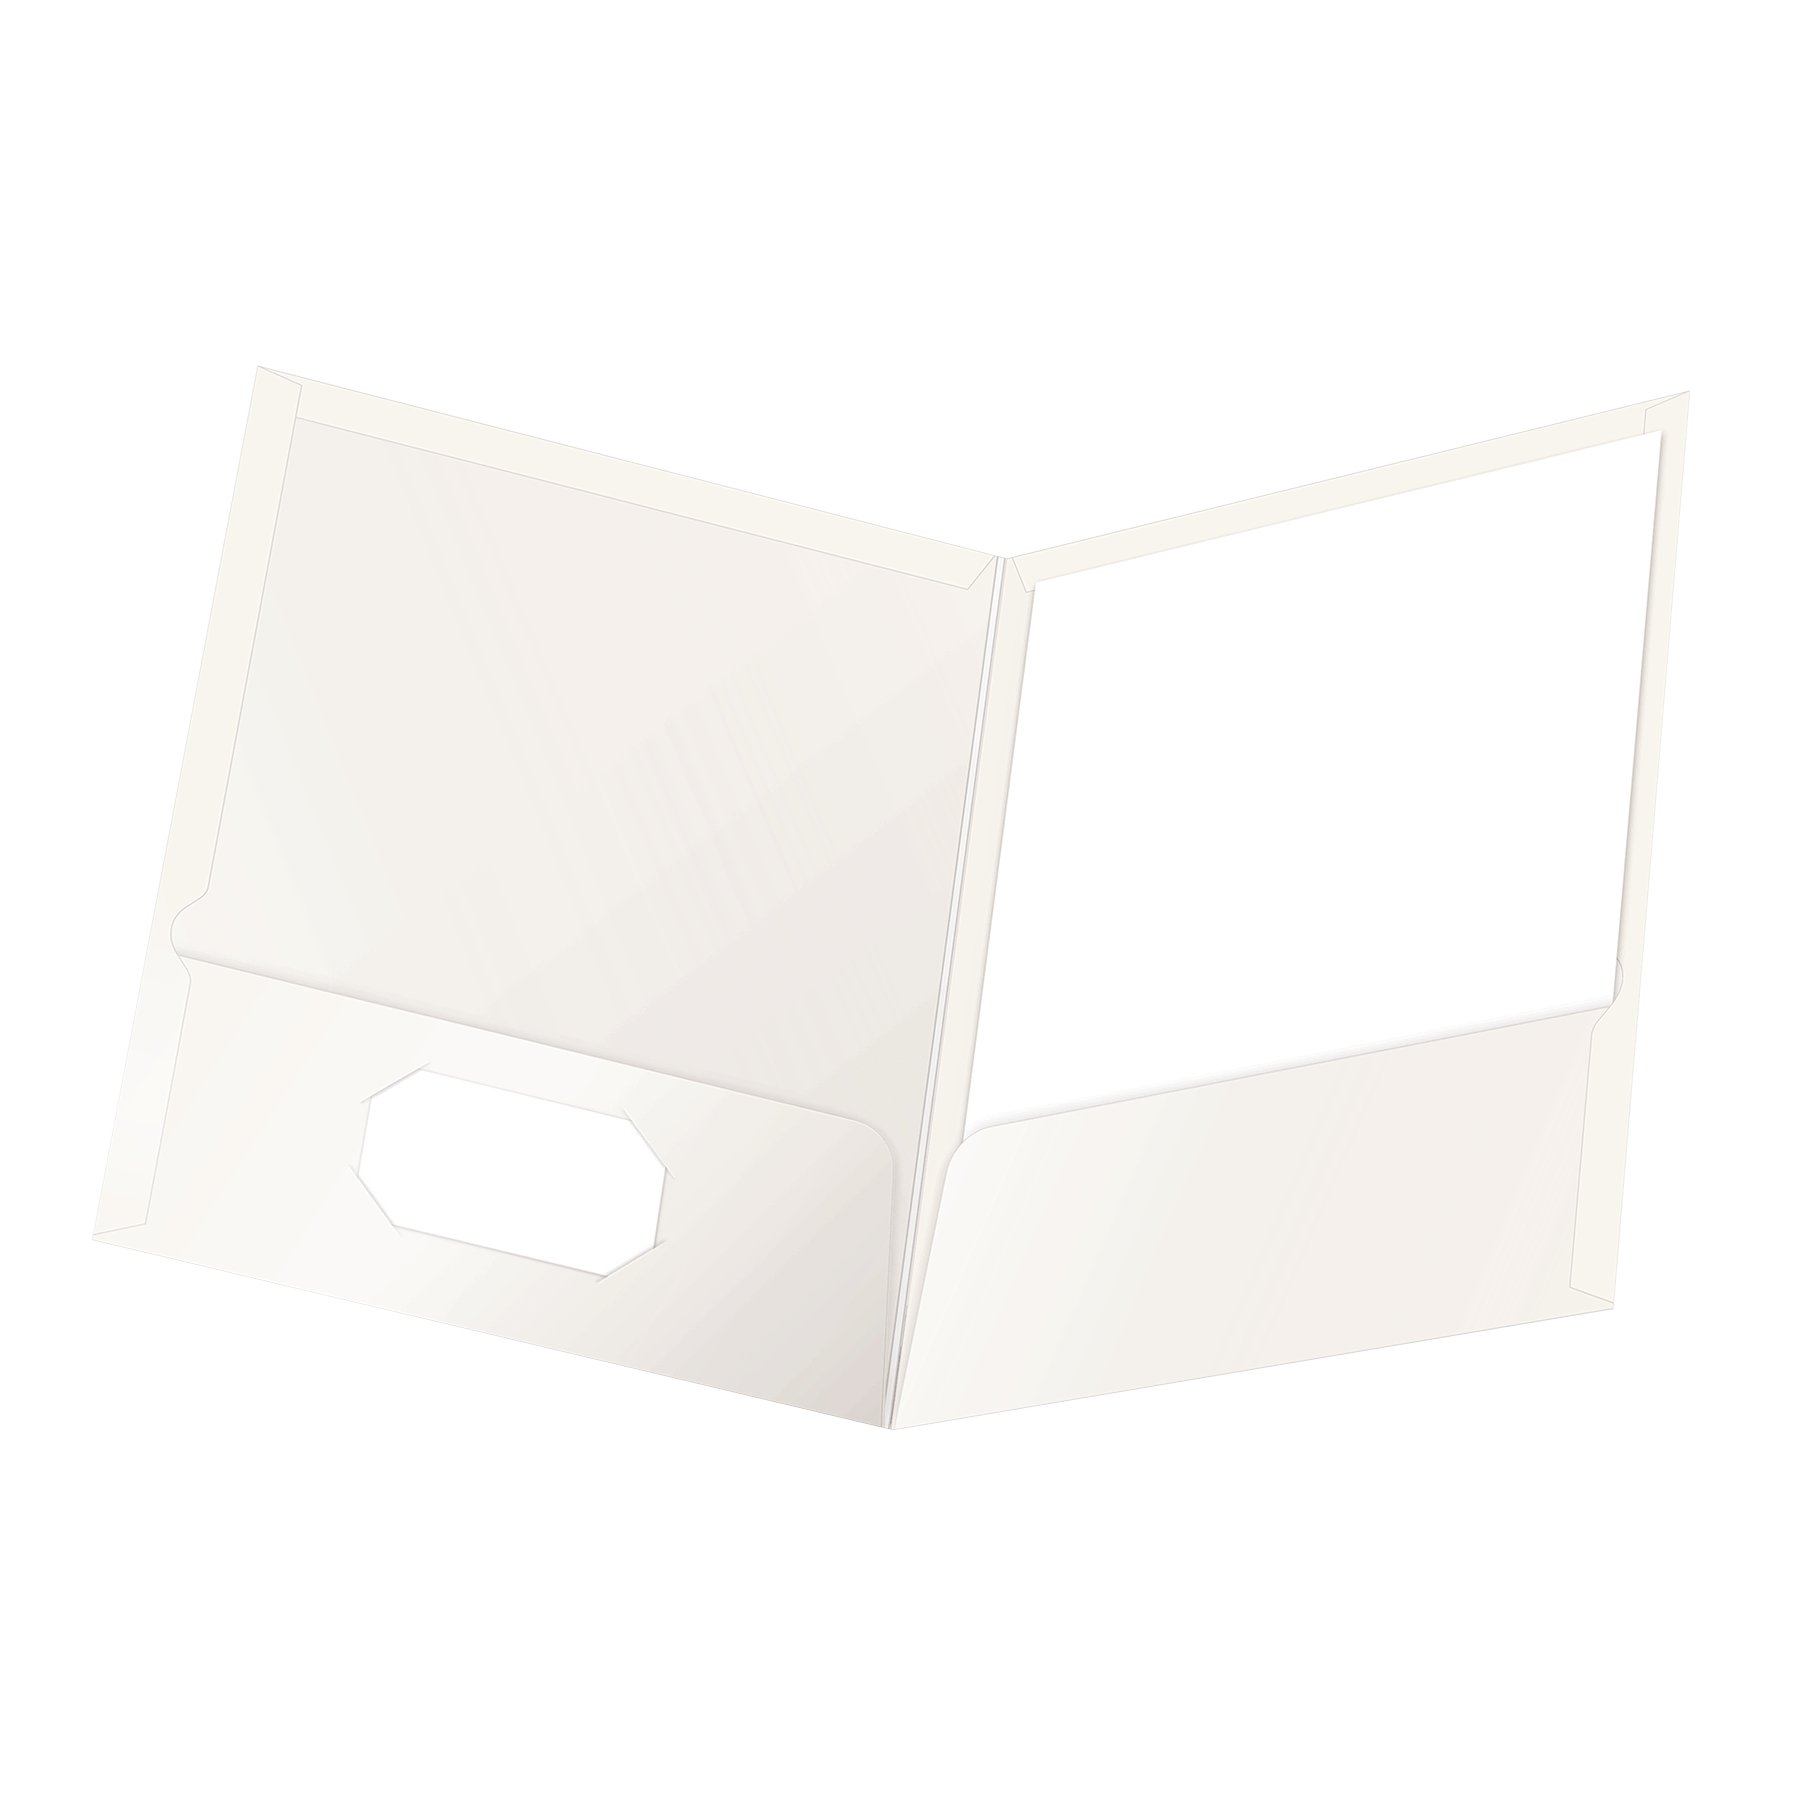 Oxford Laminated Twin-Pocket Folders, Letter Size, White, Holds 100 Sheets, Box of 25 (51704EE)